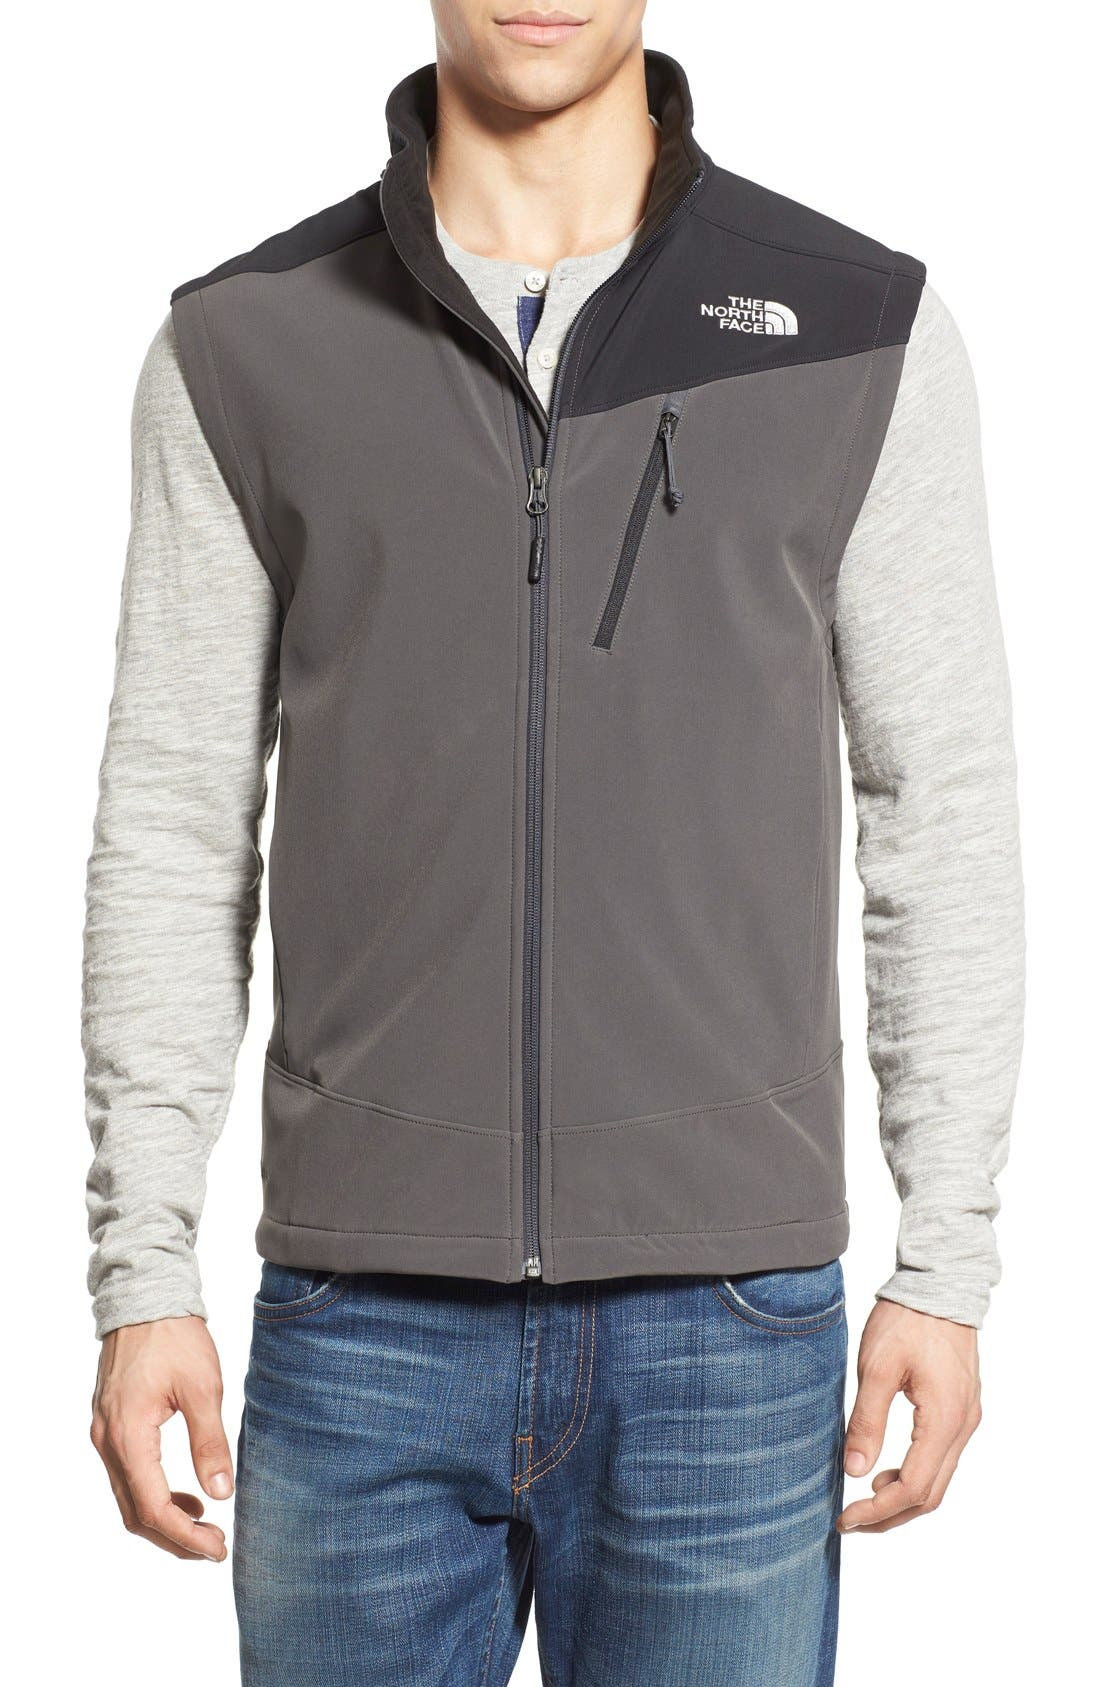 THE NORTH FACE Apex Shellrock Active Fit Wind Resistant DWR Vest